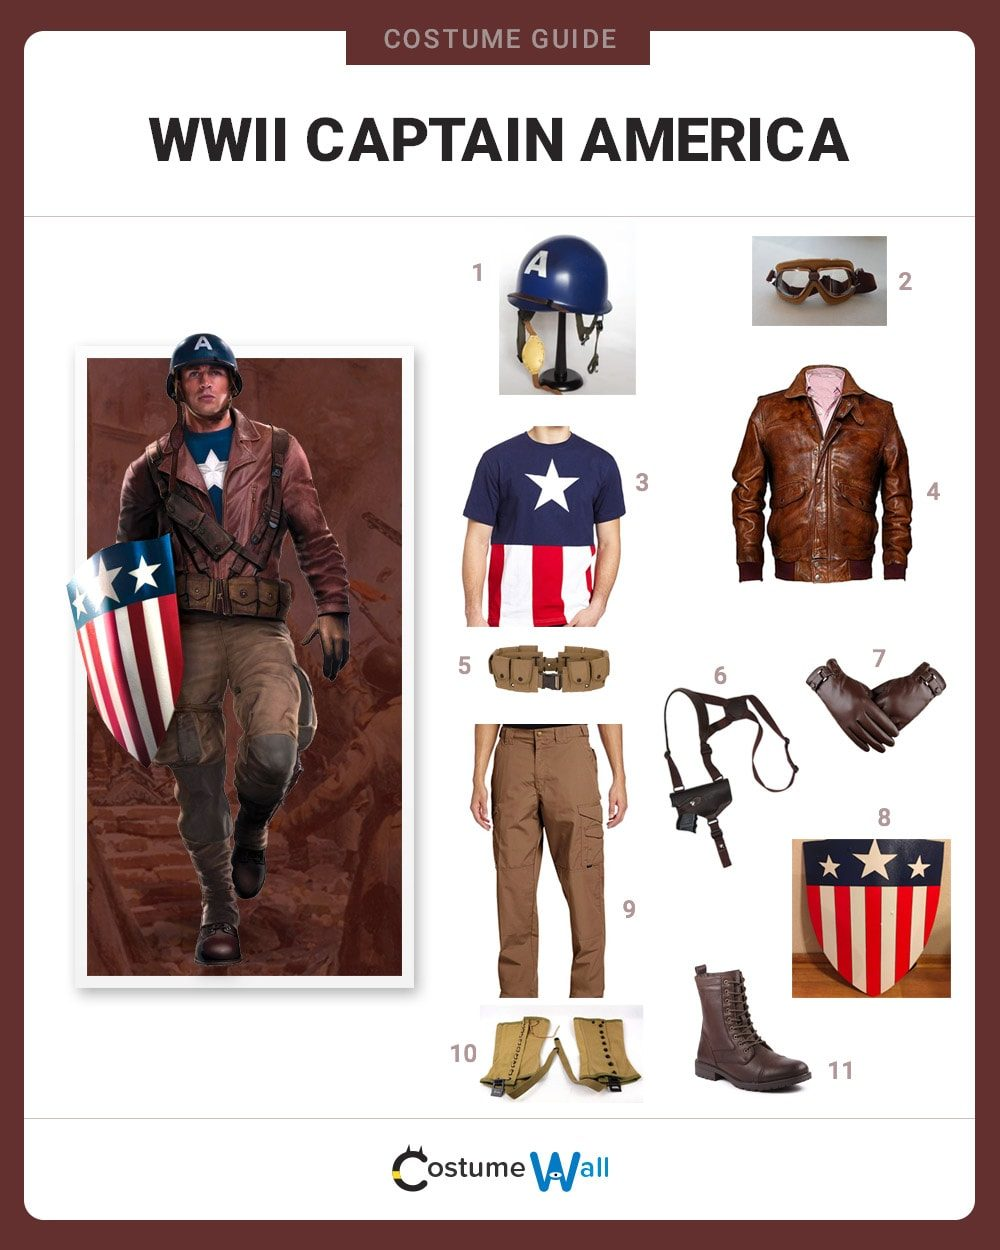 WWII Captain America Costume Guide